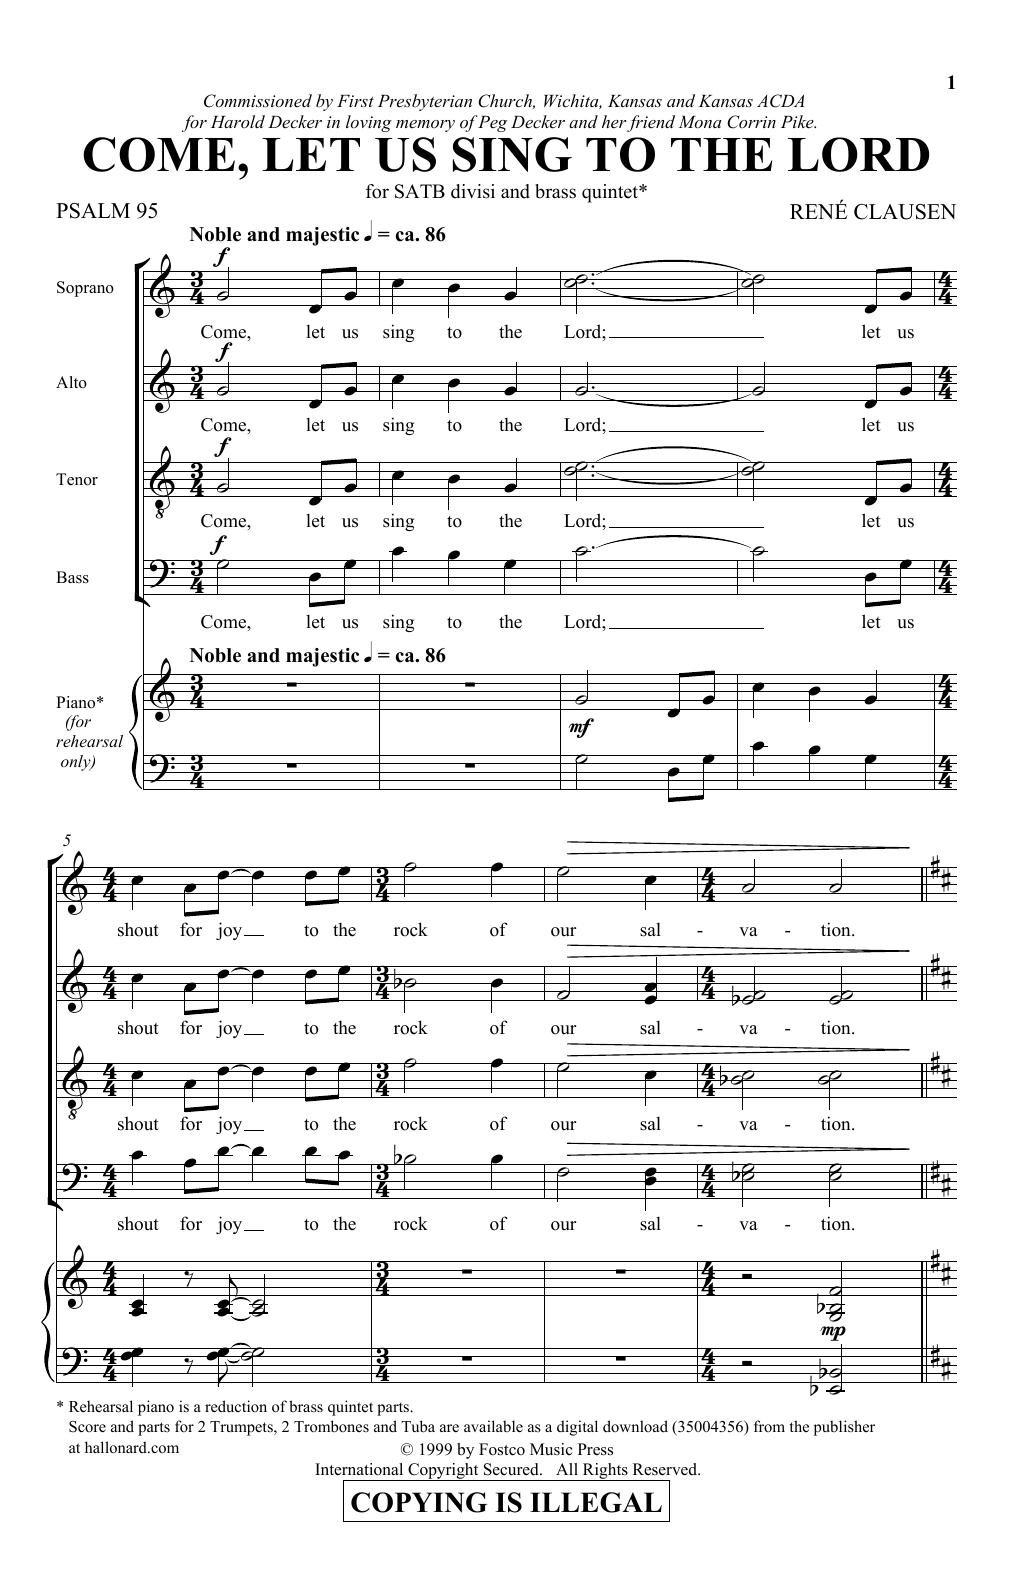 Come, Let Us Sing To The Lord (SSAATTBB Choir)